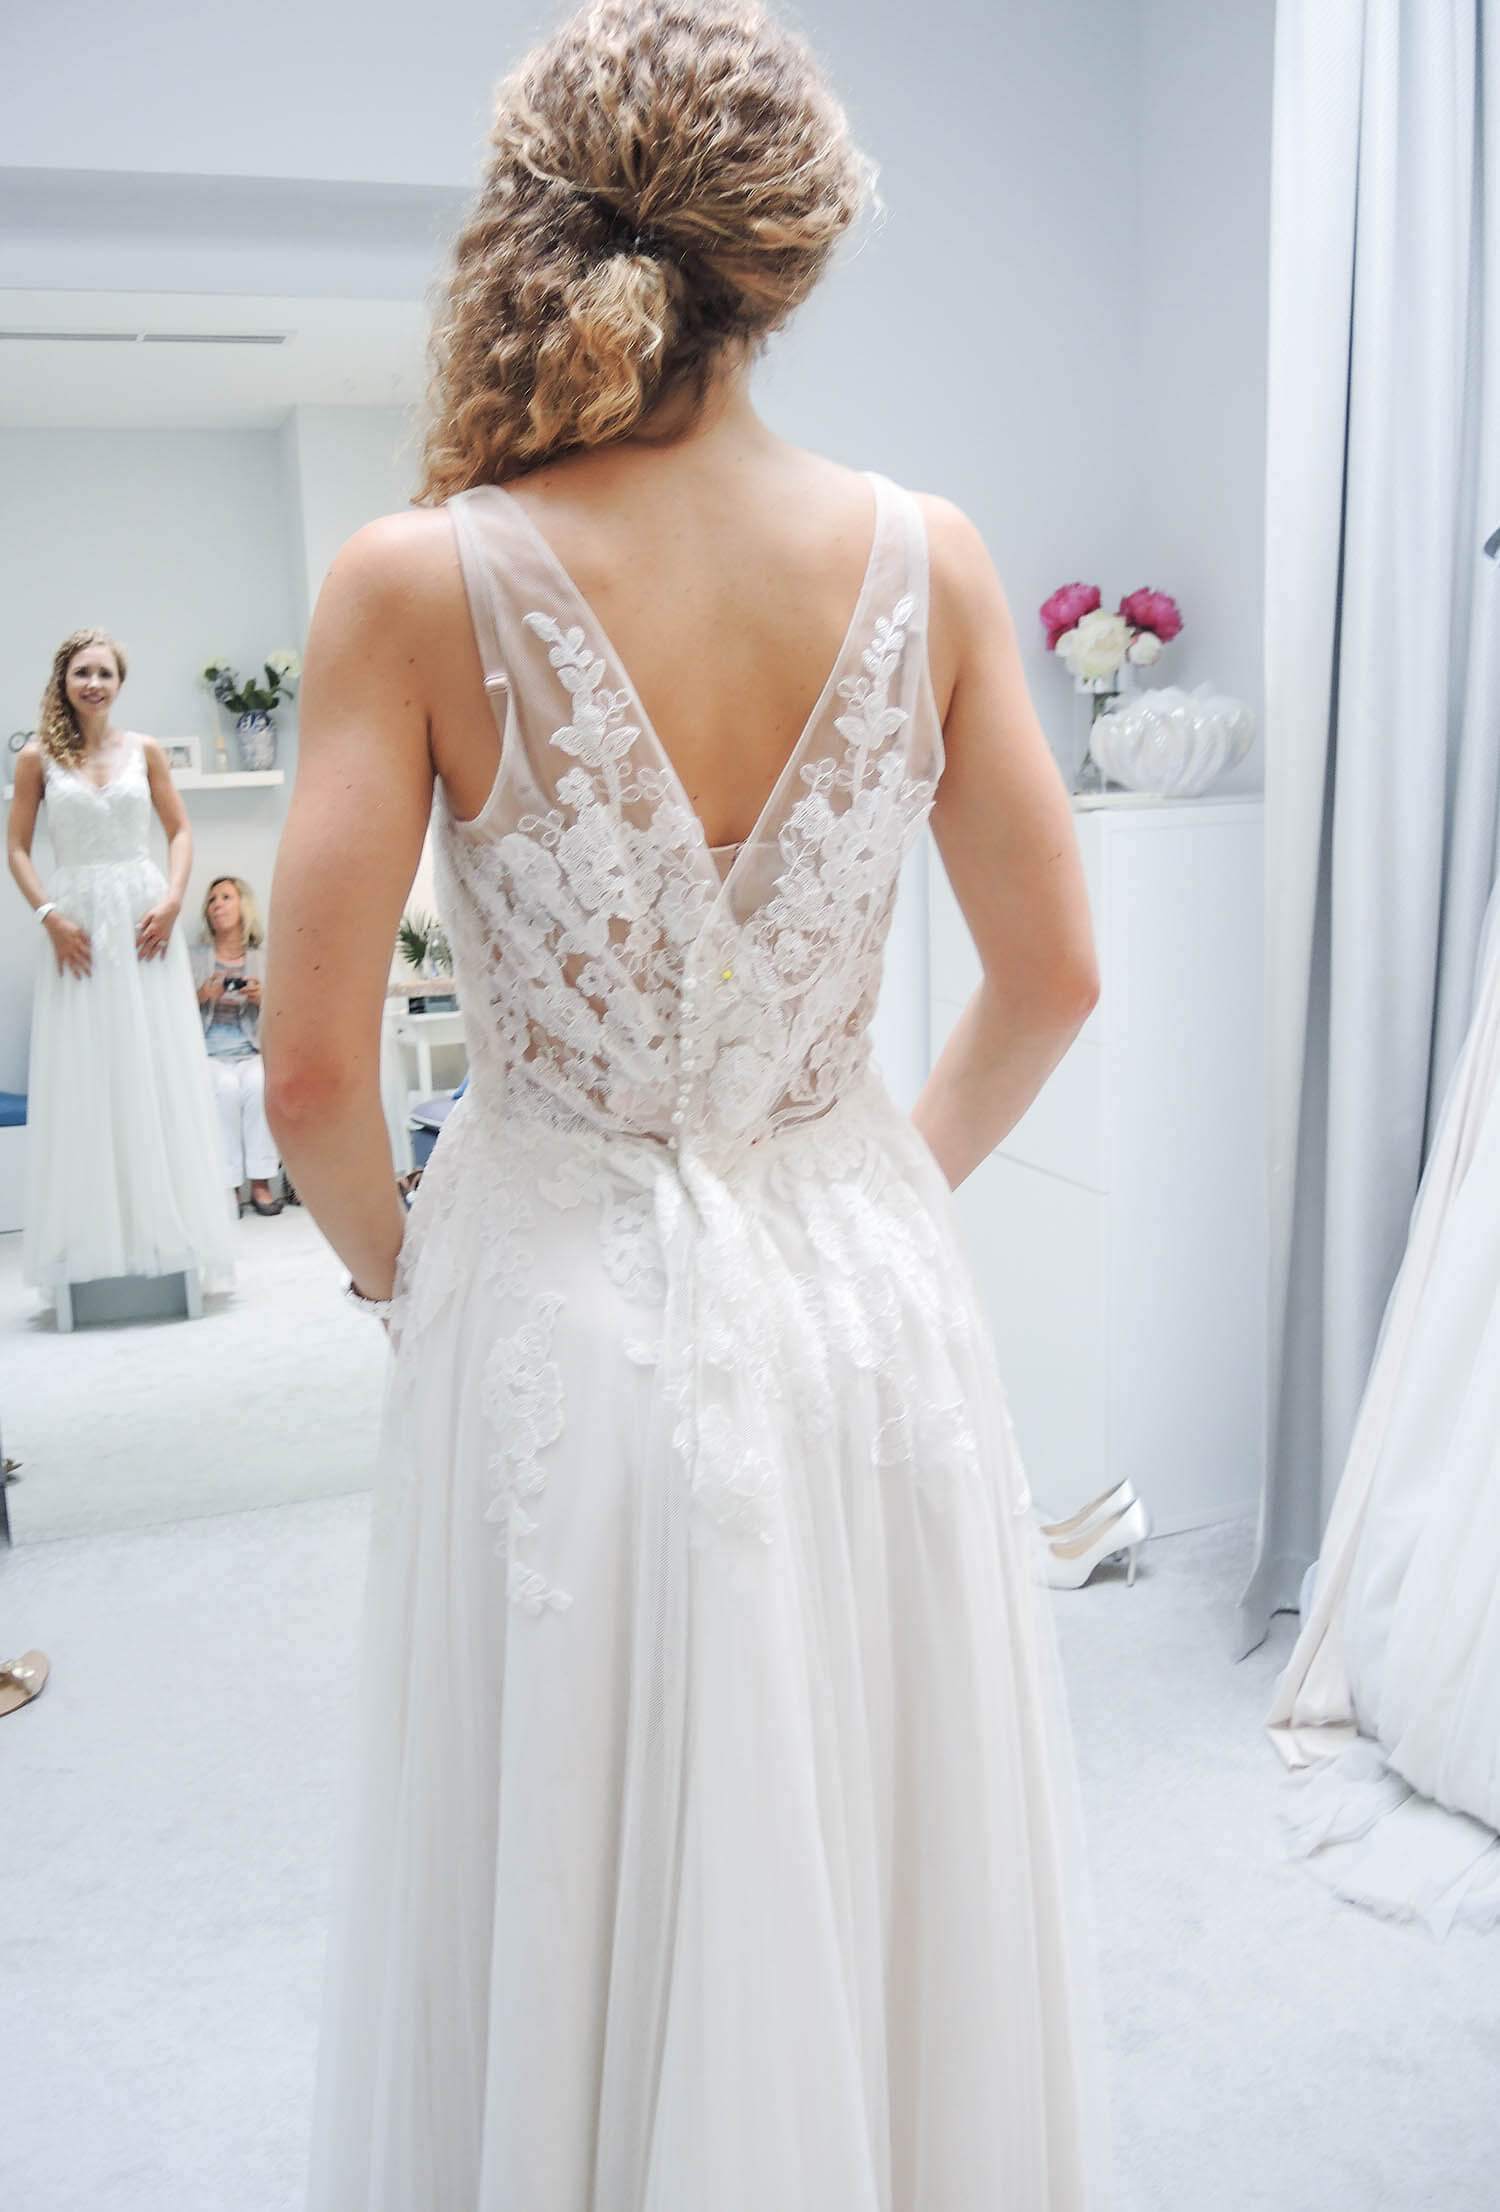 Wedding Update: Bride Dress fitting at I am Yours, Dusseldorf ...